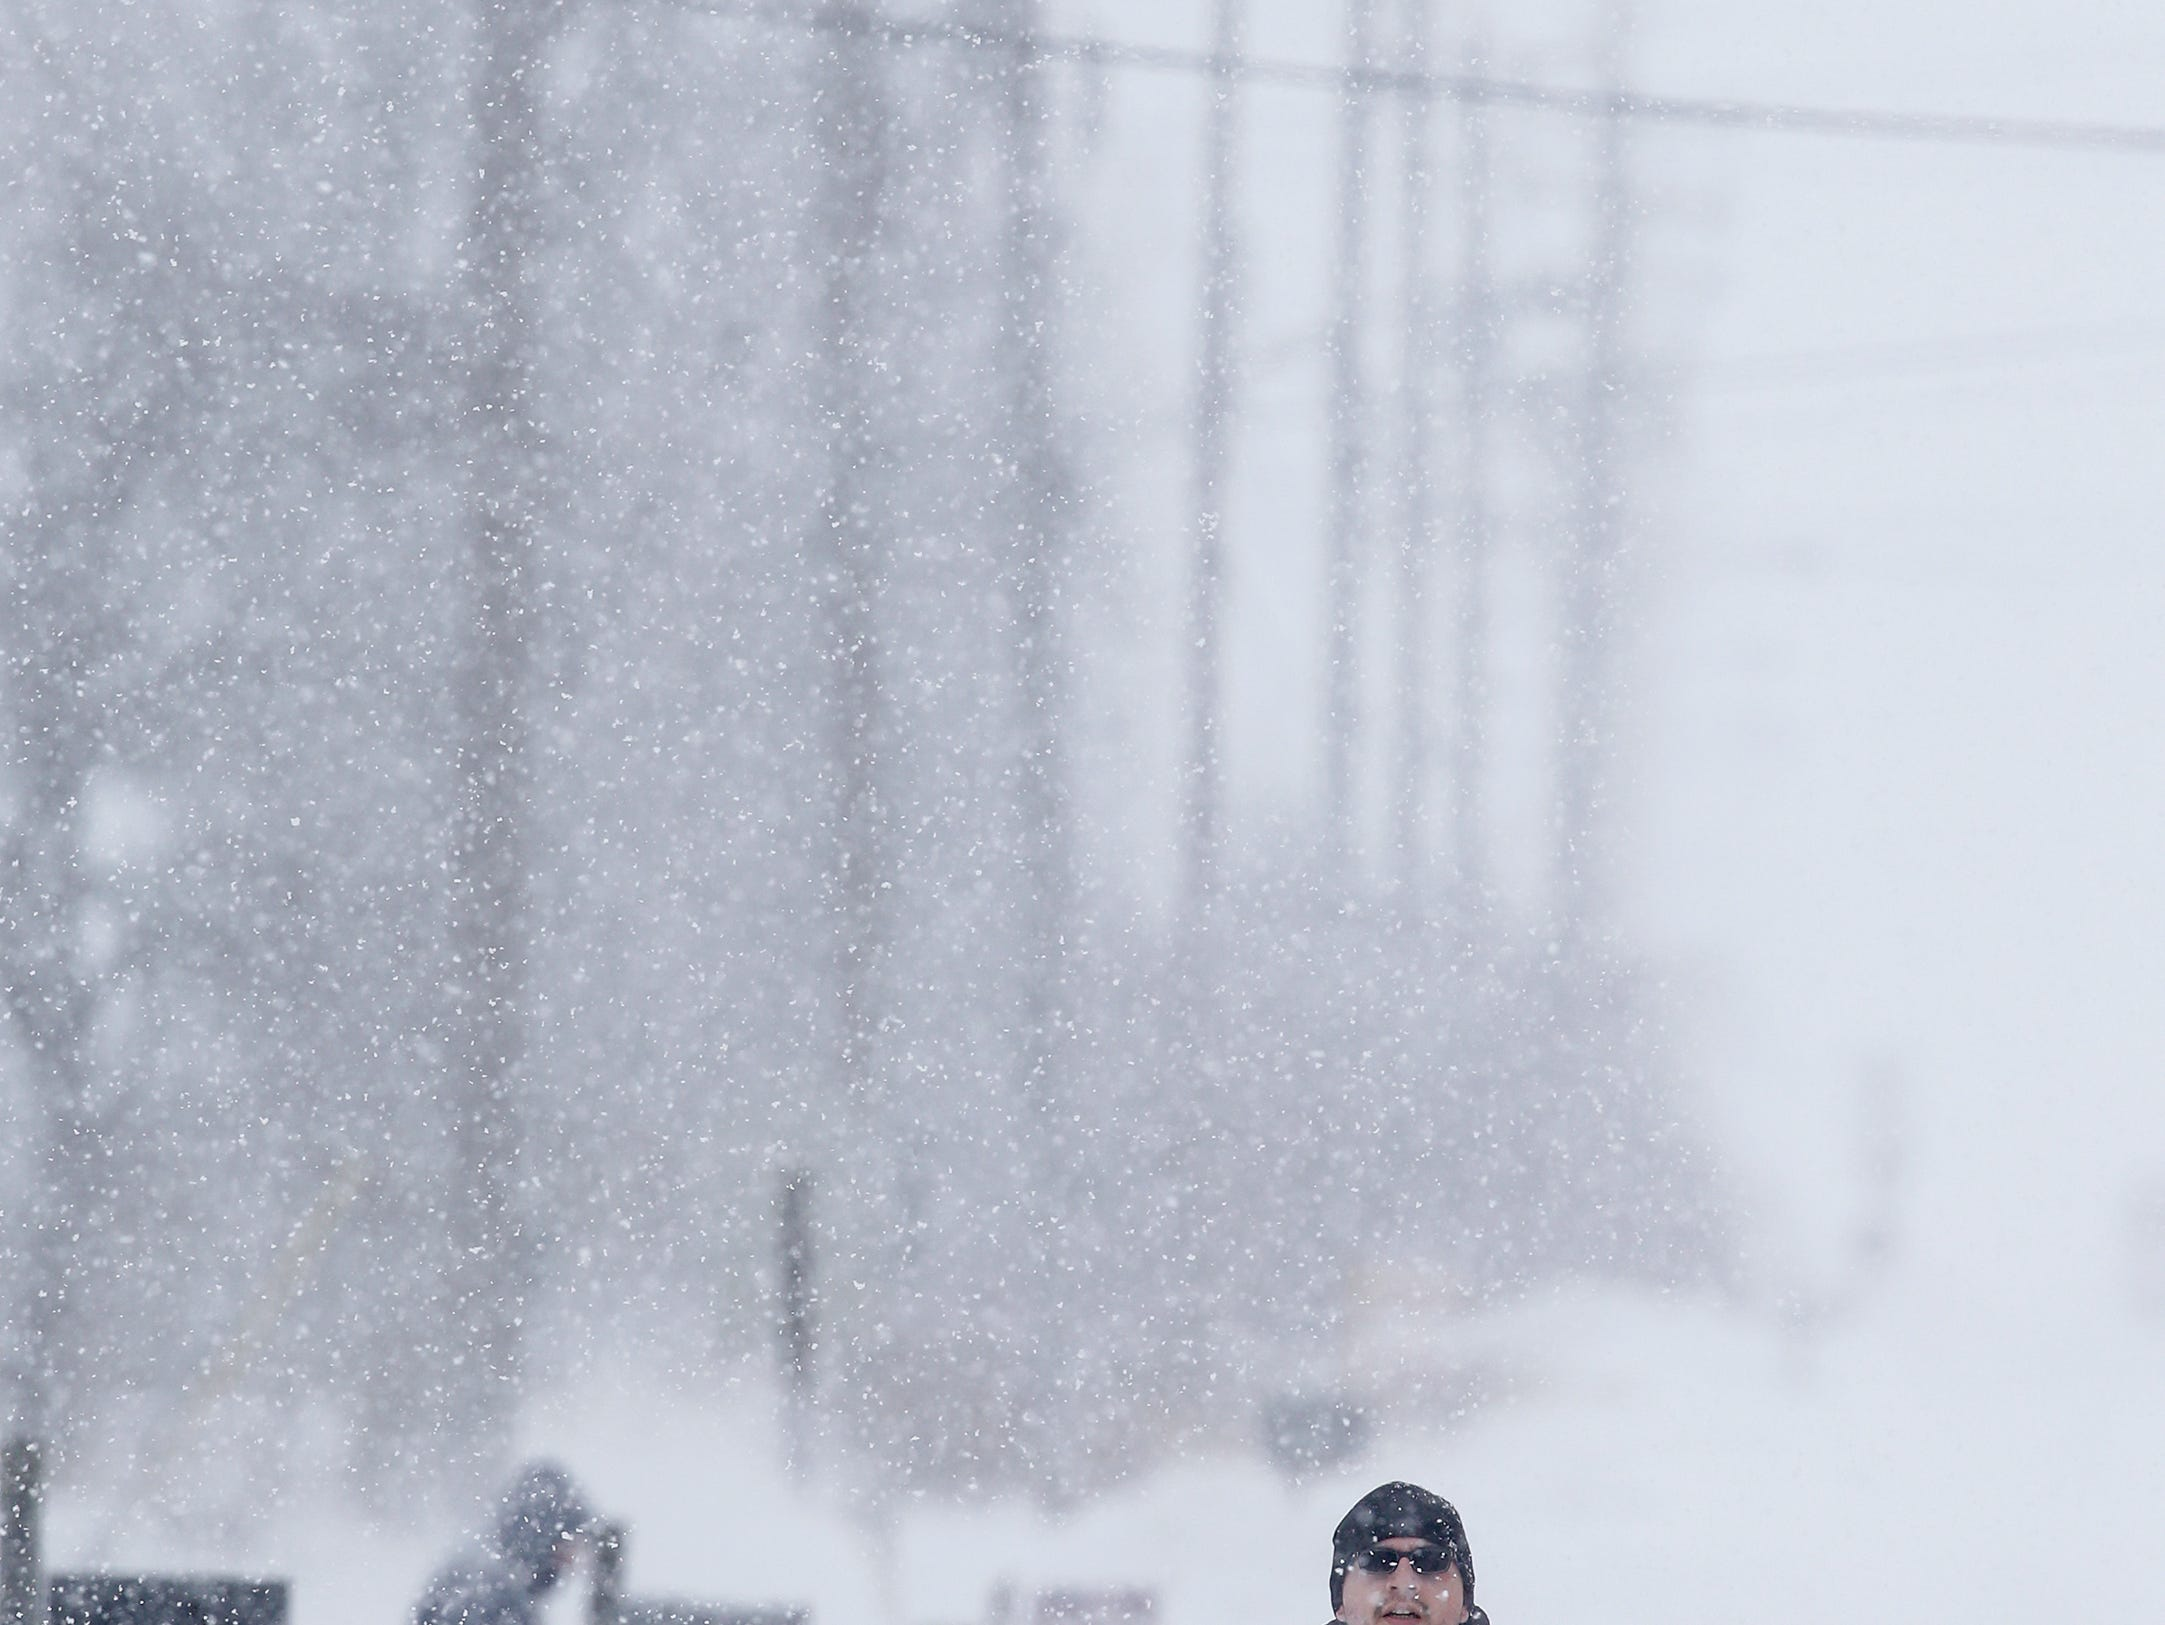 Johnny Torres, of Manitowoc, walks down Mirro Drive in a snowstorm Monday, Jan. 28, 2019, in Manitowoc, Wis.